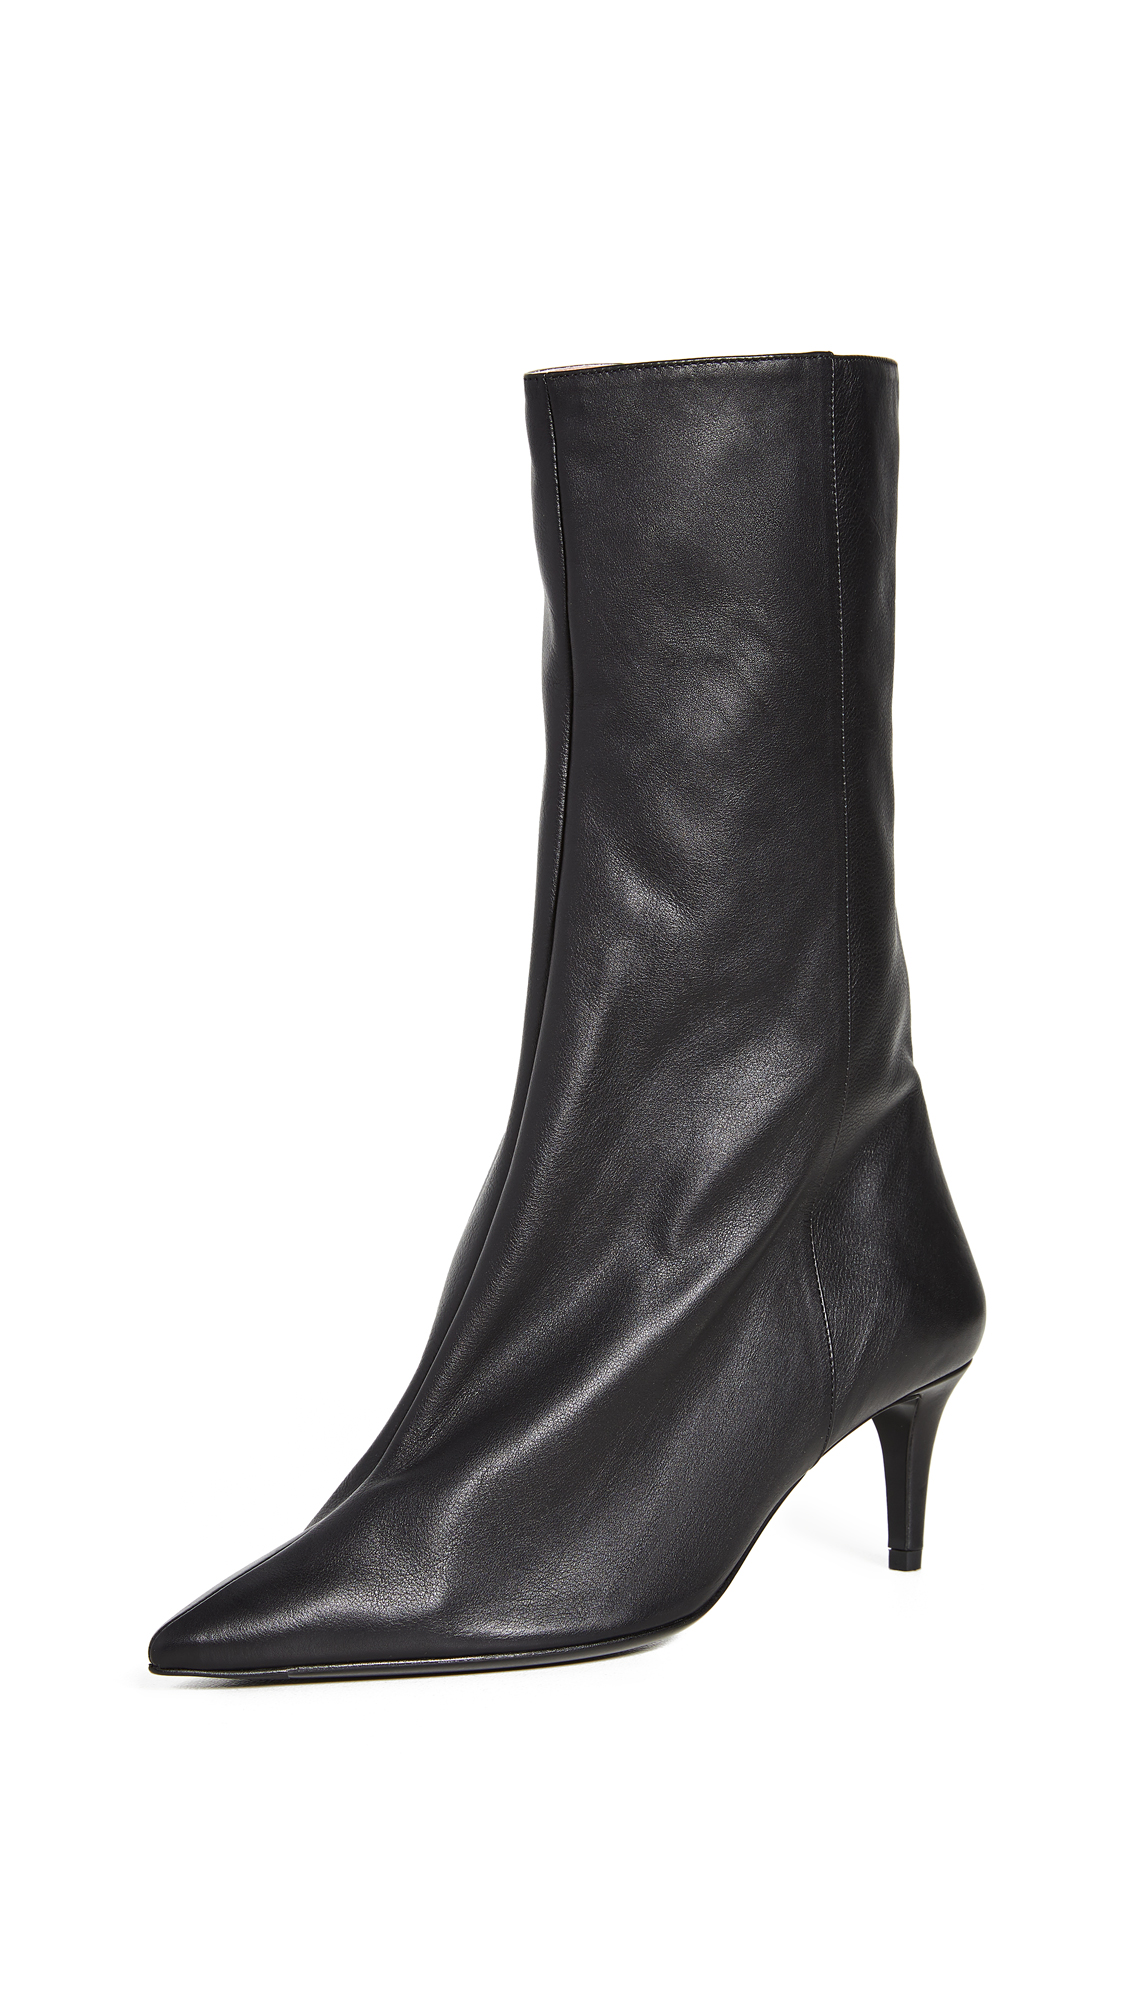 Buy Acne Studios Leather Ankle Boots online, shop Acne Studios